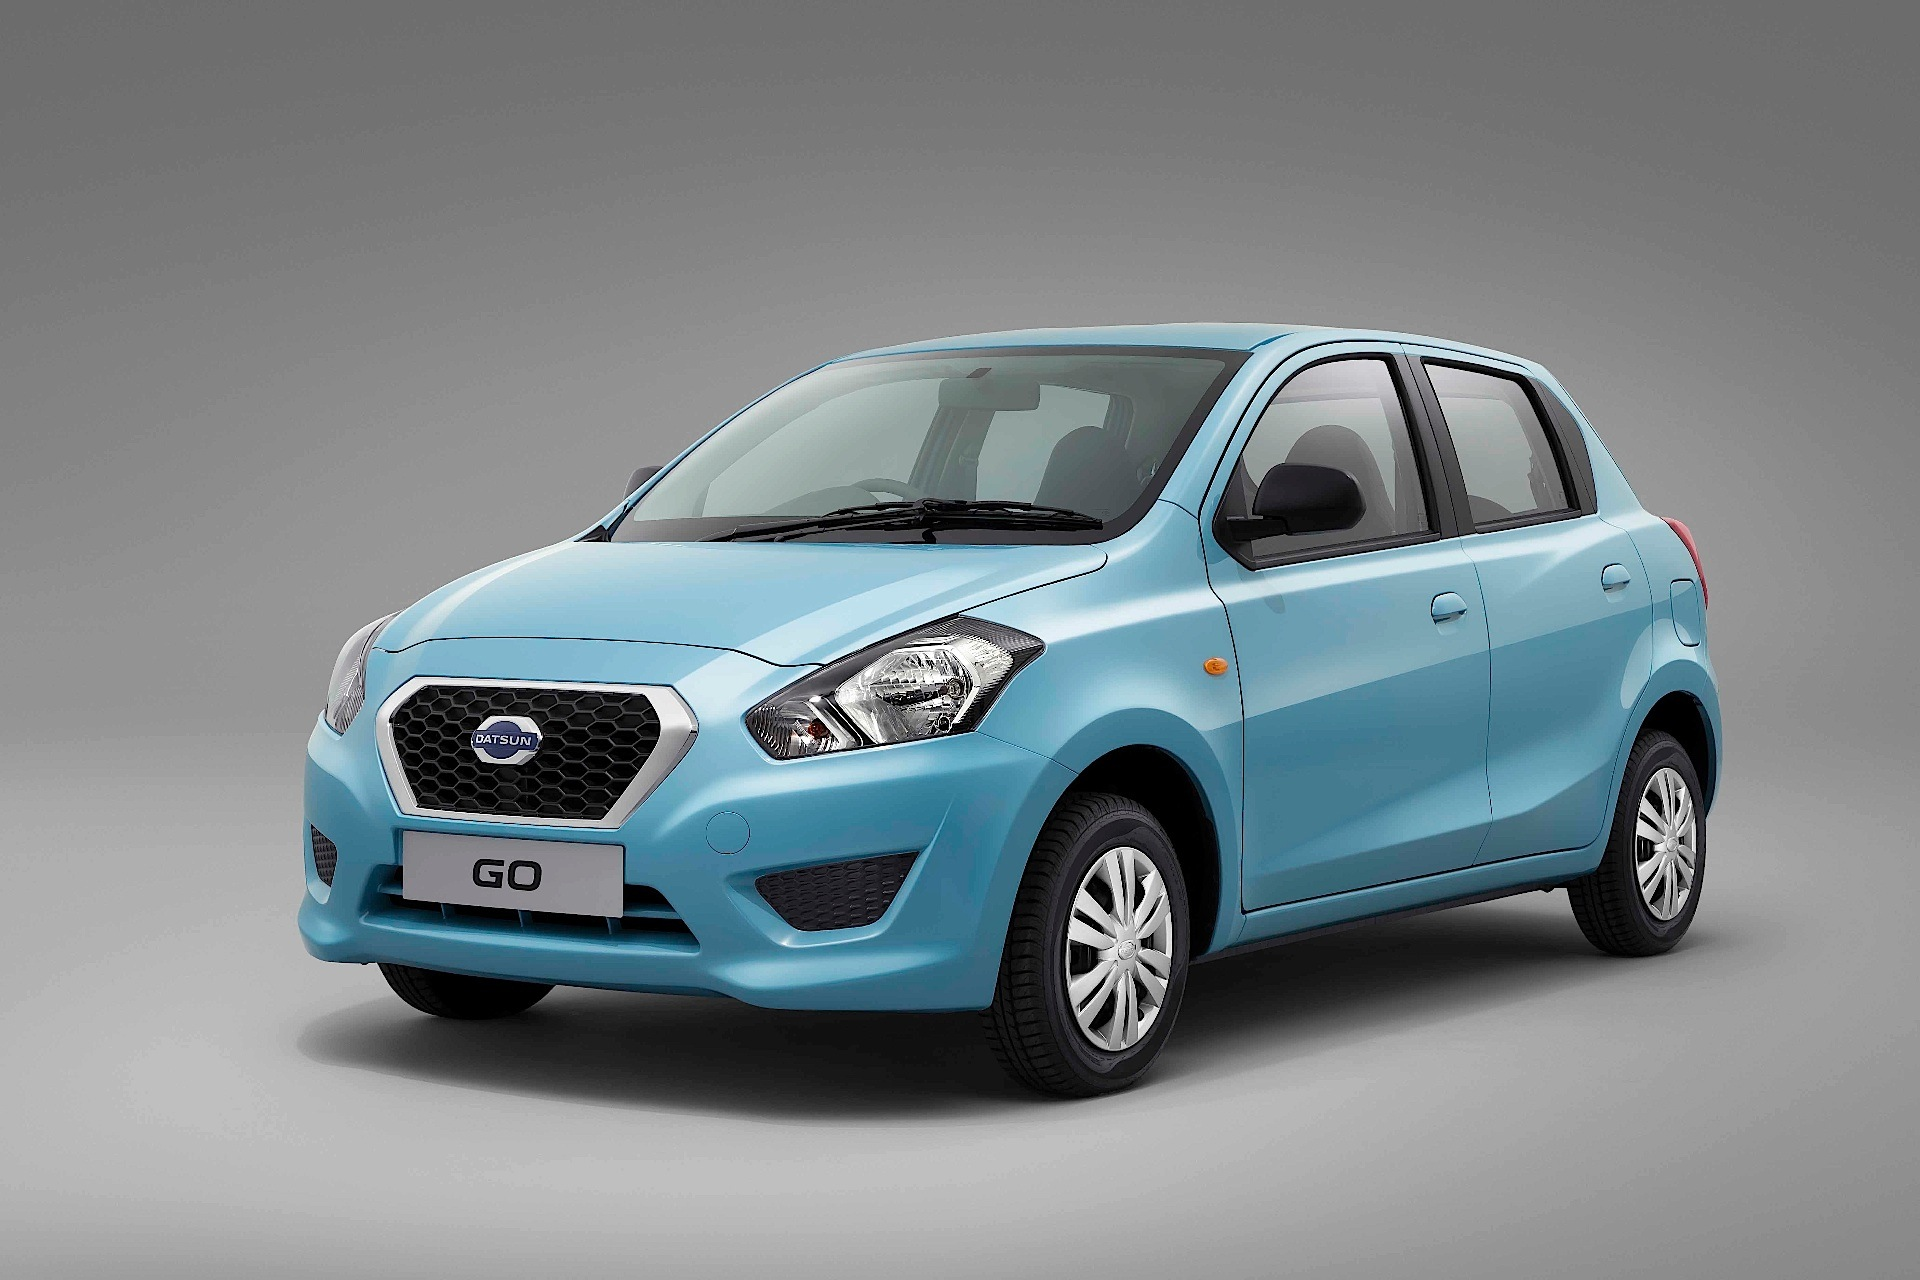 datsun go specs \u0026 photos 2013, 2014, 2015, 2016, 2017, 2018, 2019